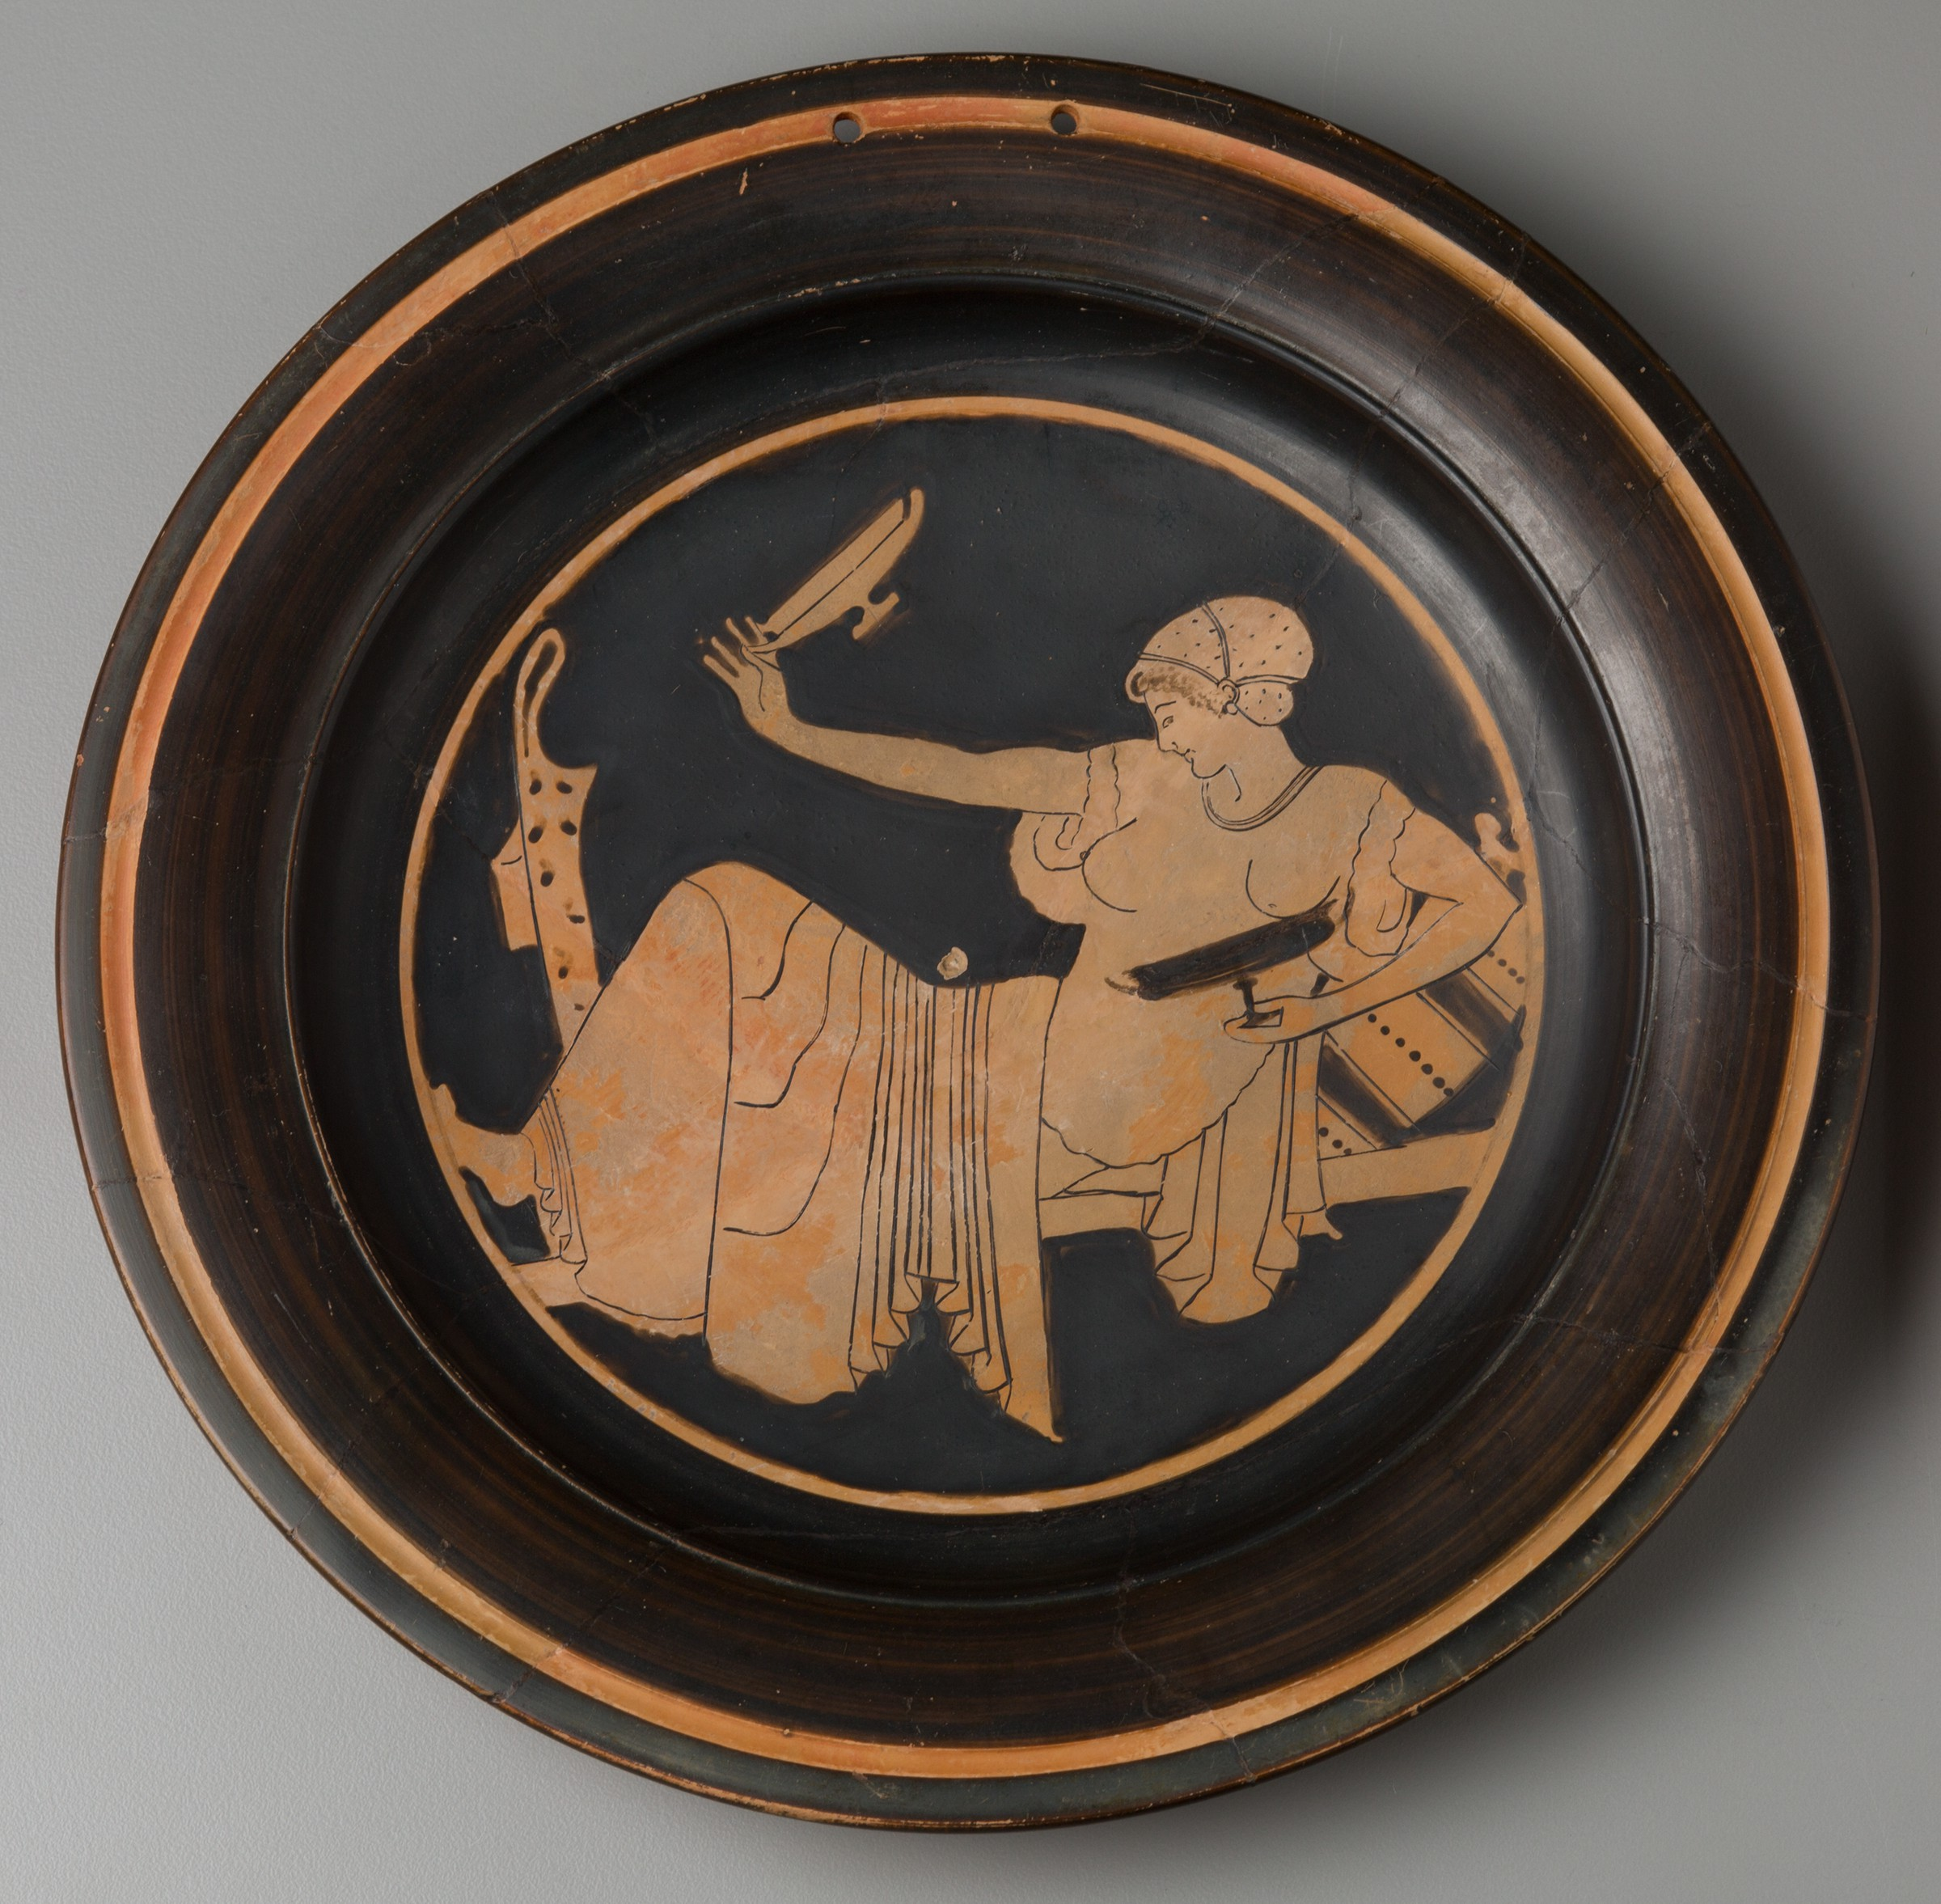 The center of this round plate depicts a woman reclining on a horizontal surface, facing left. She appears in a light reddish-brown clay color, while the background is glossy black. Her knees are bent, and her upper body is propped up on a decorated pillow. Her clothing is draped in elaborate folds. With her left hand, she holds a shallow, stemmed cup rendered in black silhouette in front of her body. A second, clay-colored cup of the same shape is held aloft in her right hand.